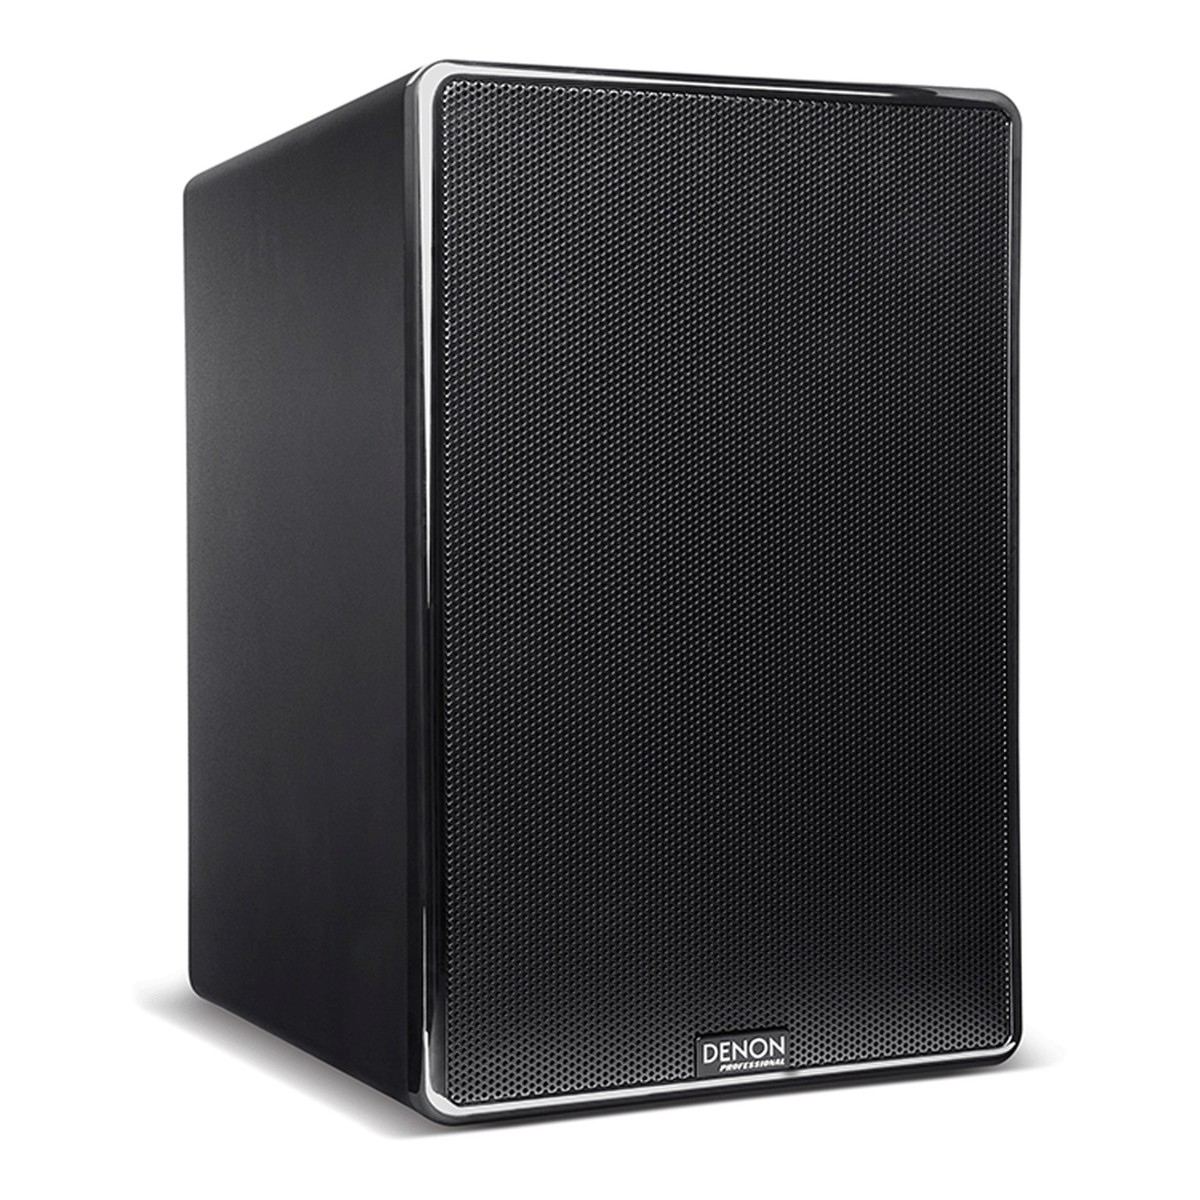 Image of Denon DN-308S 8 Active Reference Monitor Single